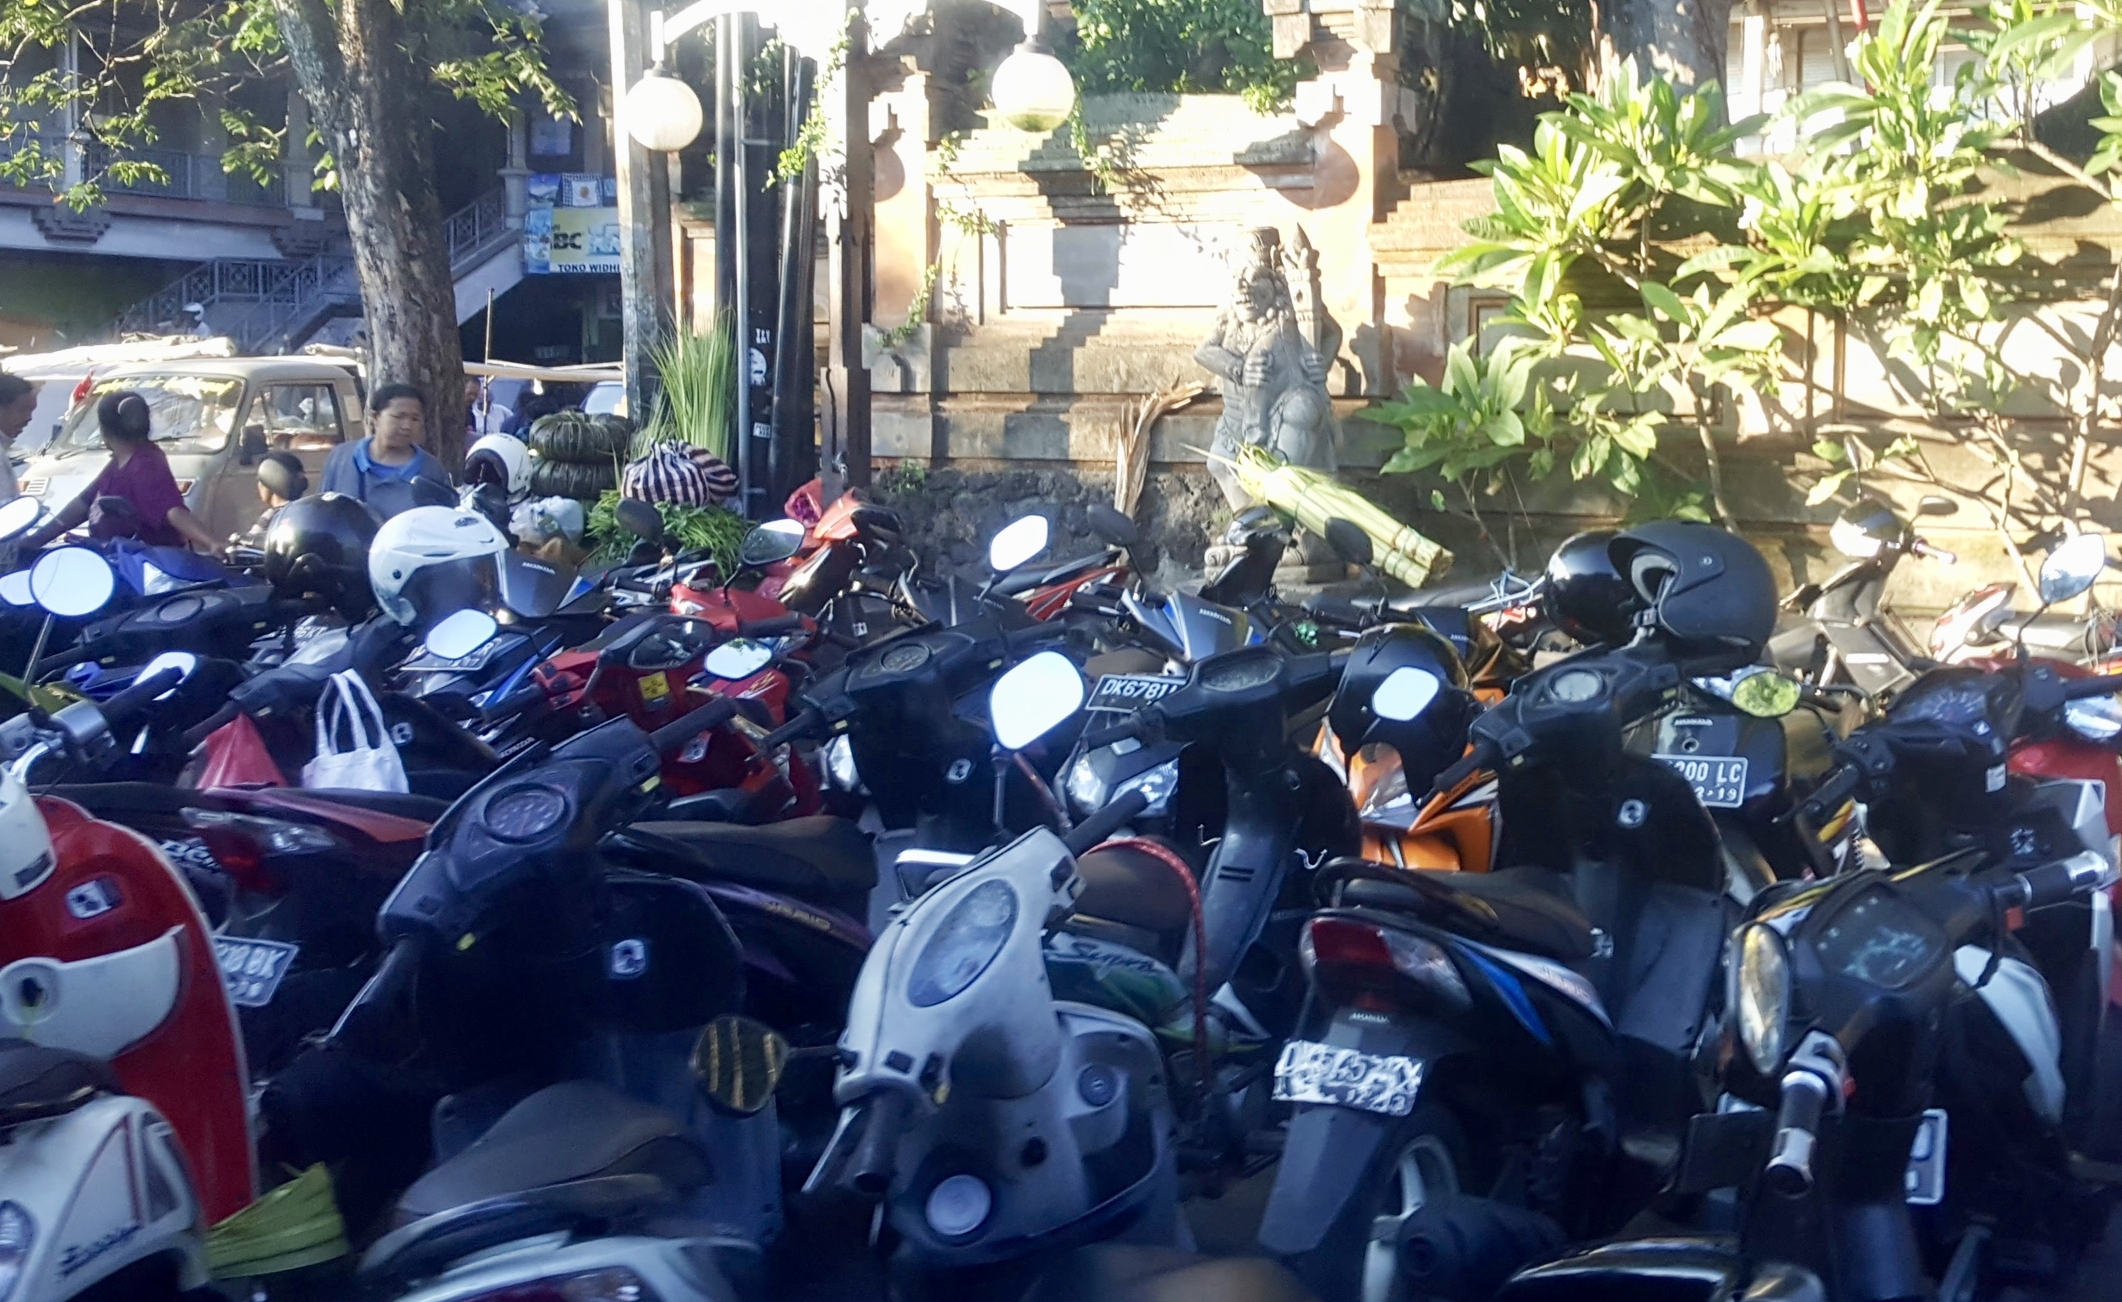 Scooters on the sidewalk, next to the crazy traffic of Ubud, Bali, Indonesia